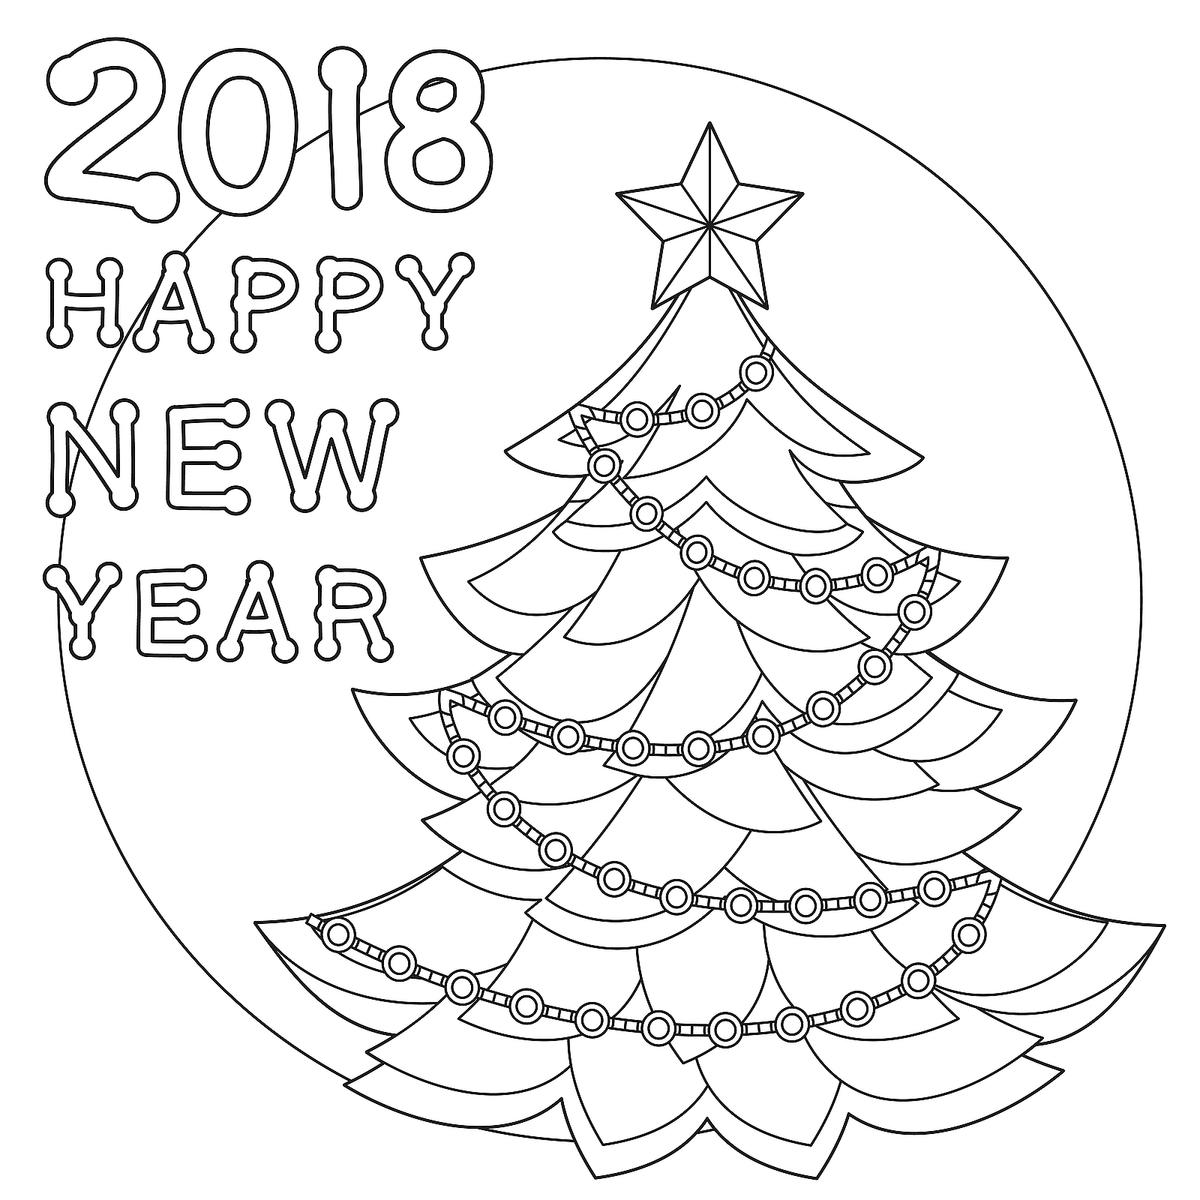 1200x1200 New Year January Coloring Pages Printable Fun To Help Kids